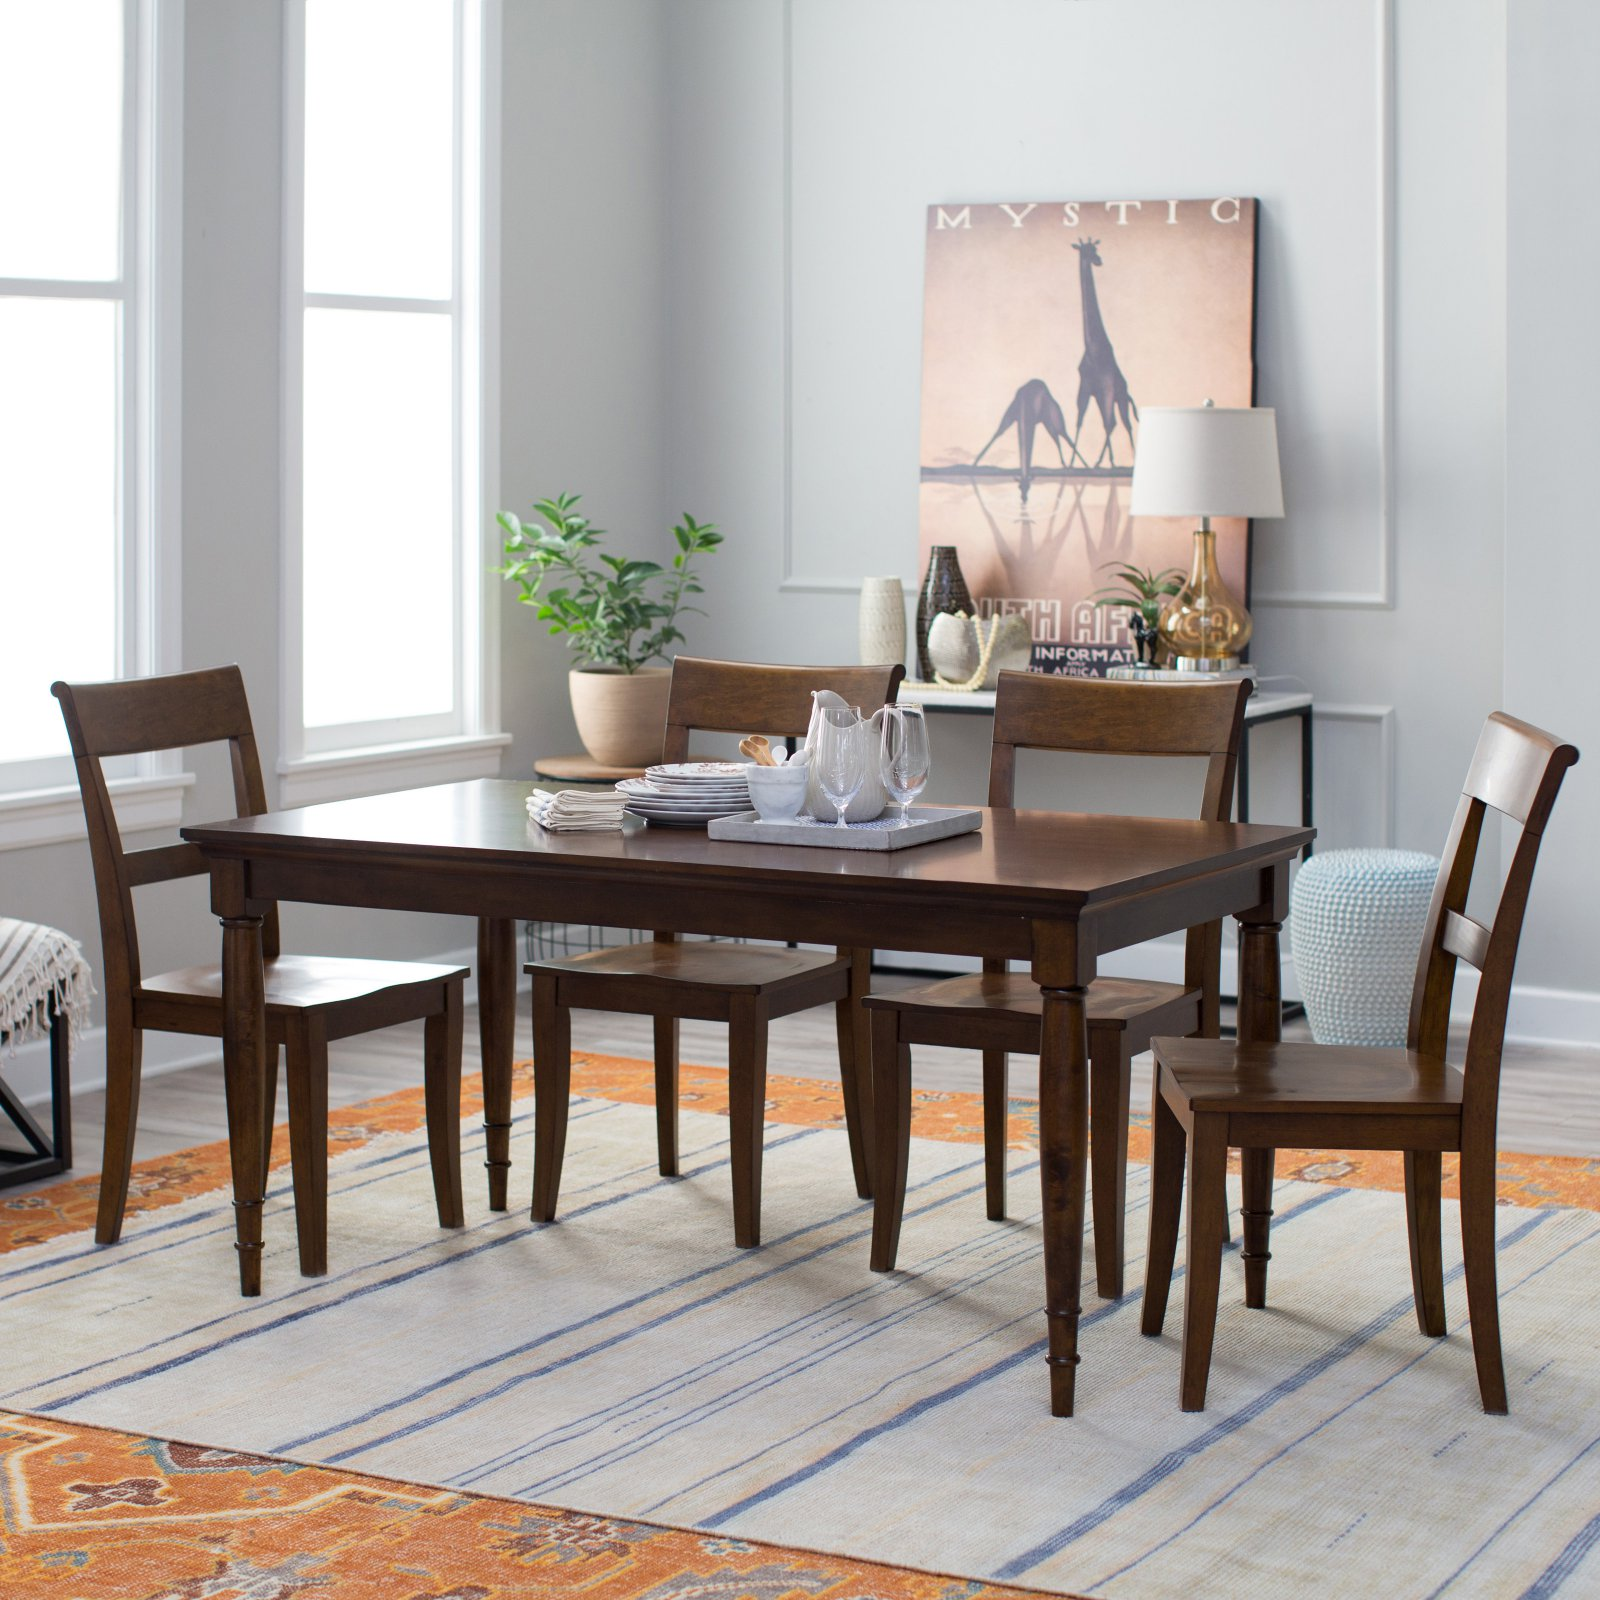 Belham Living 5 Piece Durham Walnut Dining Table Set